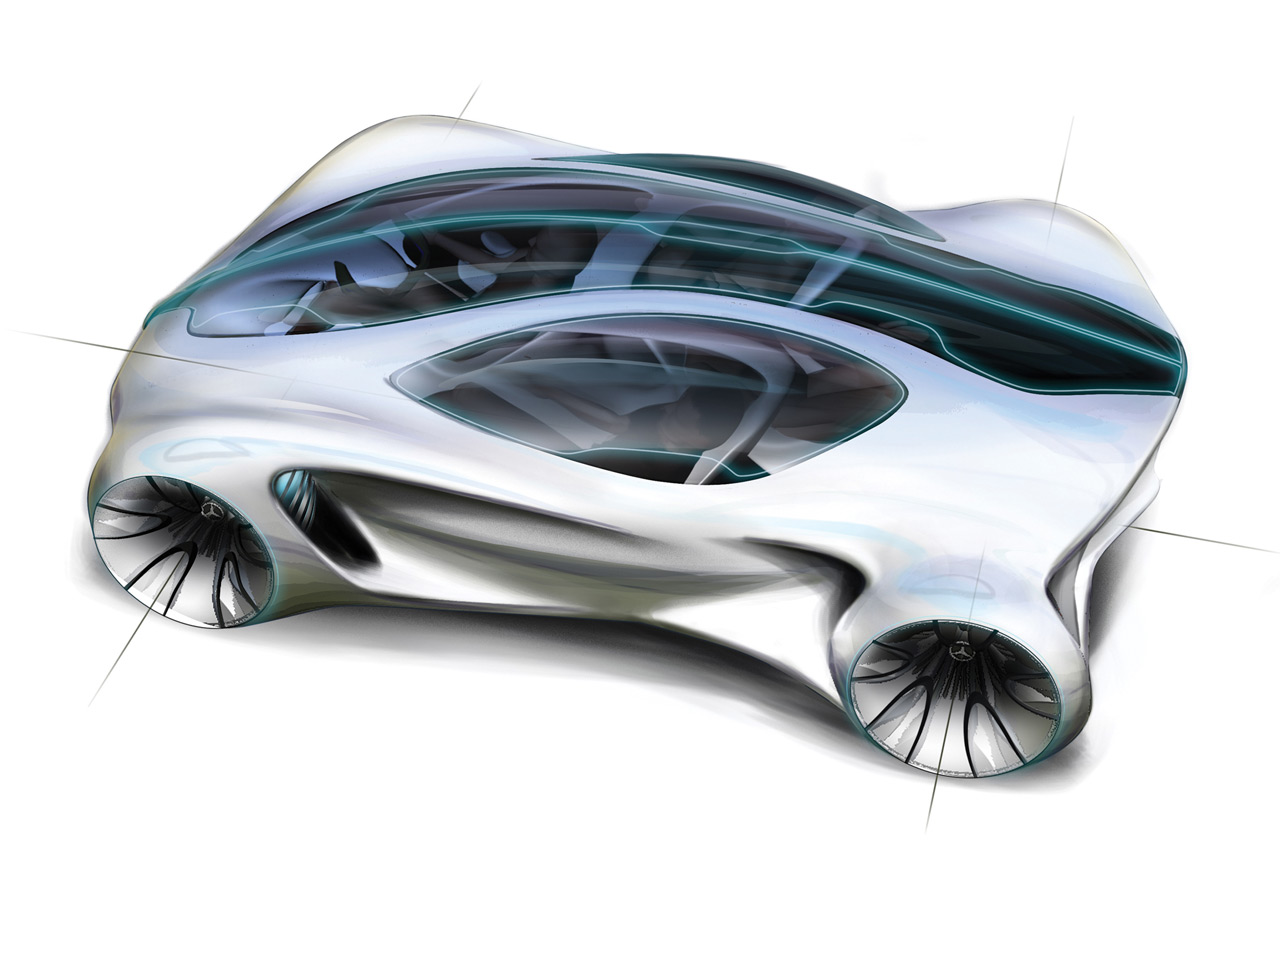 2018 Mercedes Benz Biome Concept photo - 1